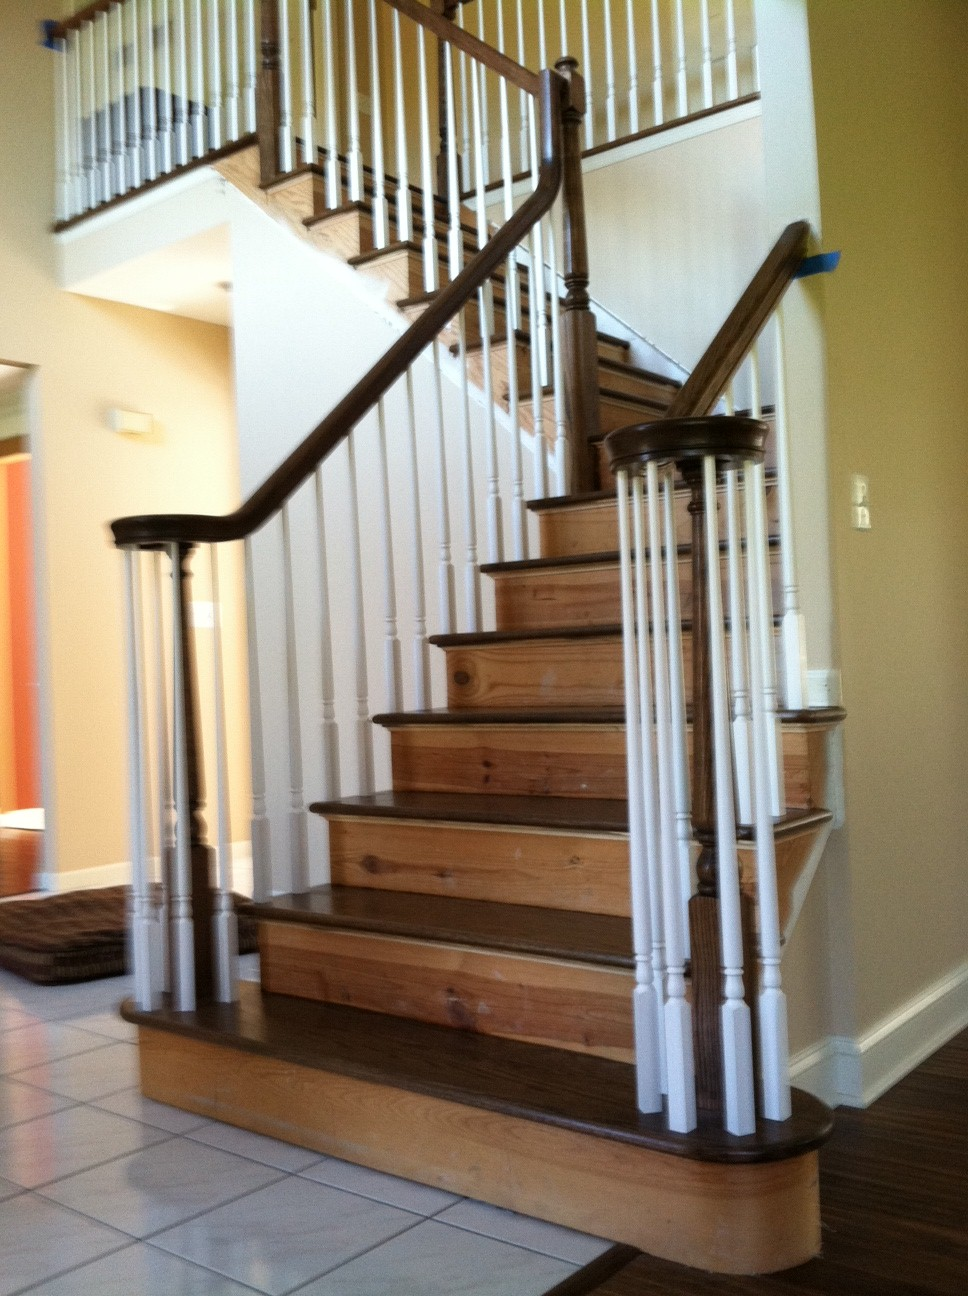 Staircase Builder   Railing And Step Treads Installed, Stained. New Jersey,  Nj